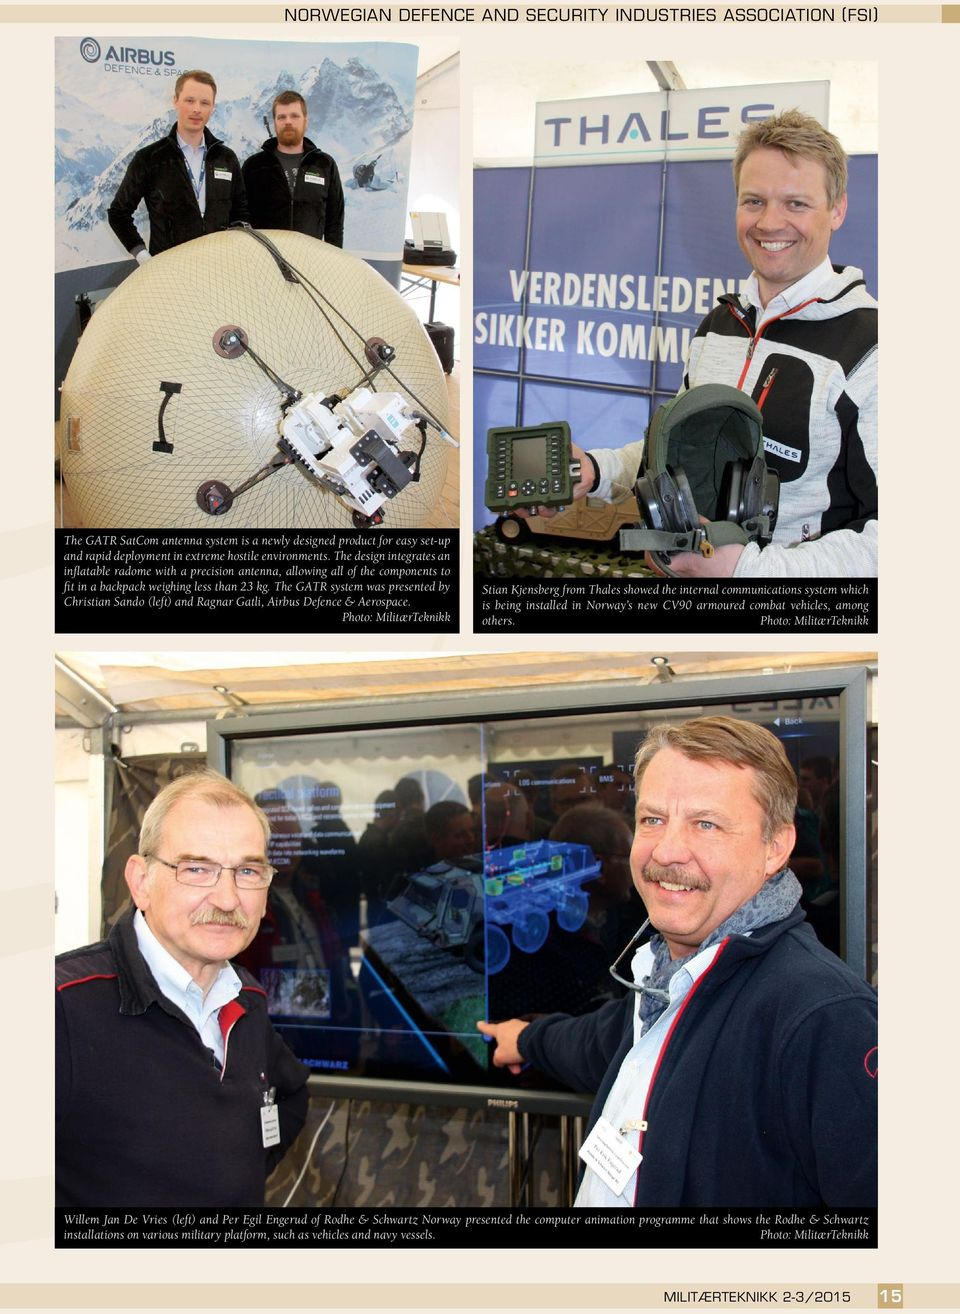 The GATR system was presented by Christian Sando (left) and Ragnar Gatli, Airbus Defence & Aerospace.